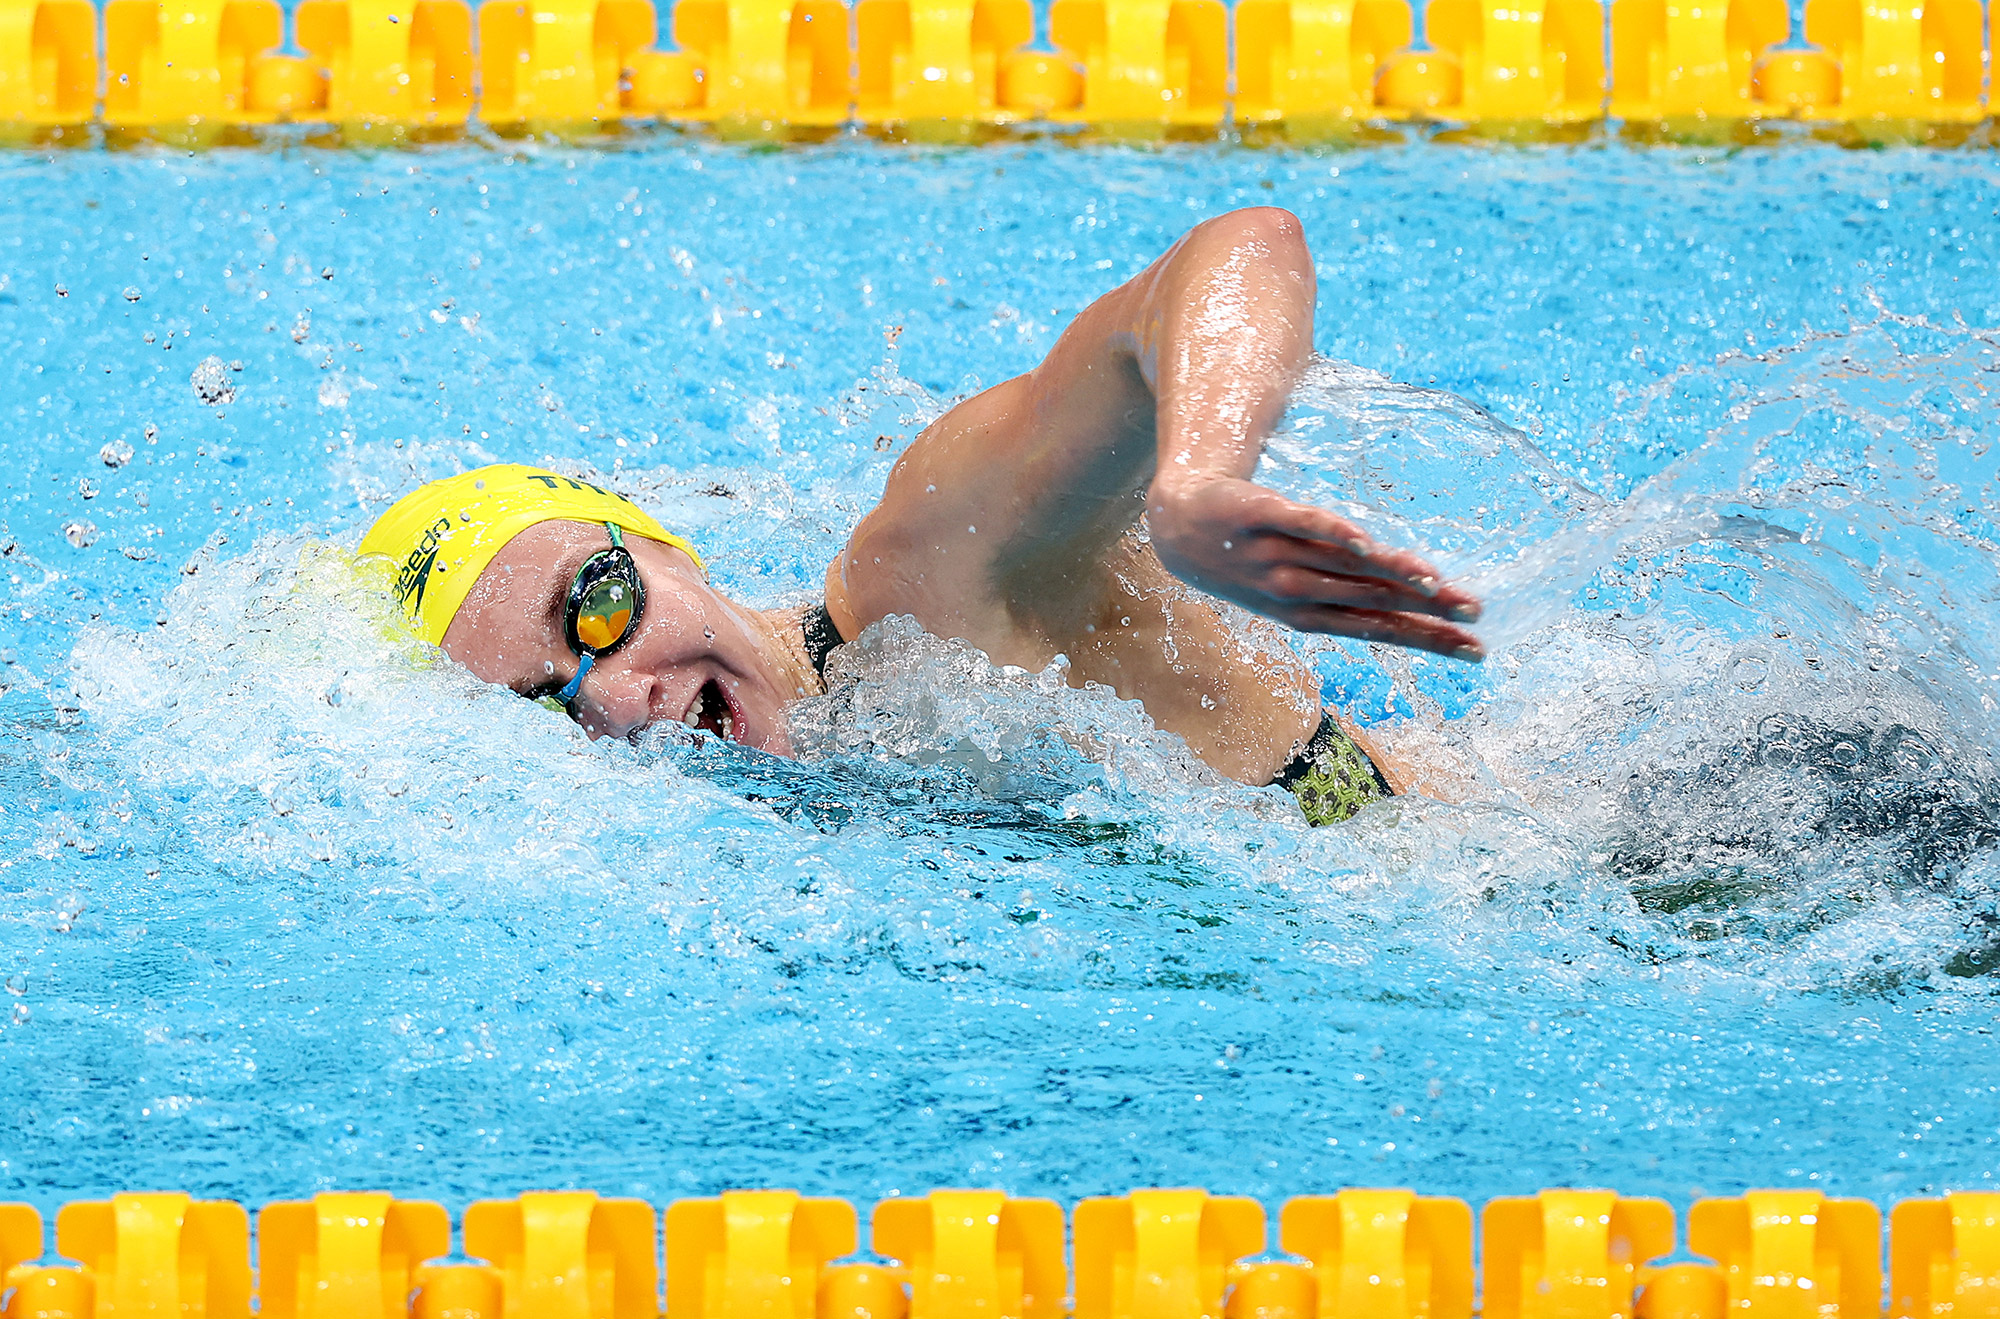 Ariarne Titmus of Team Australia competes in the 200m freestyle final on July 28.